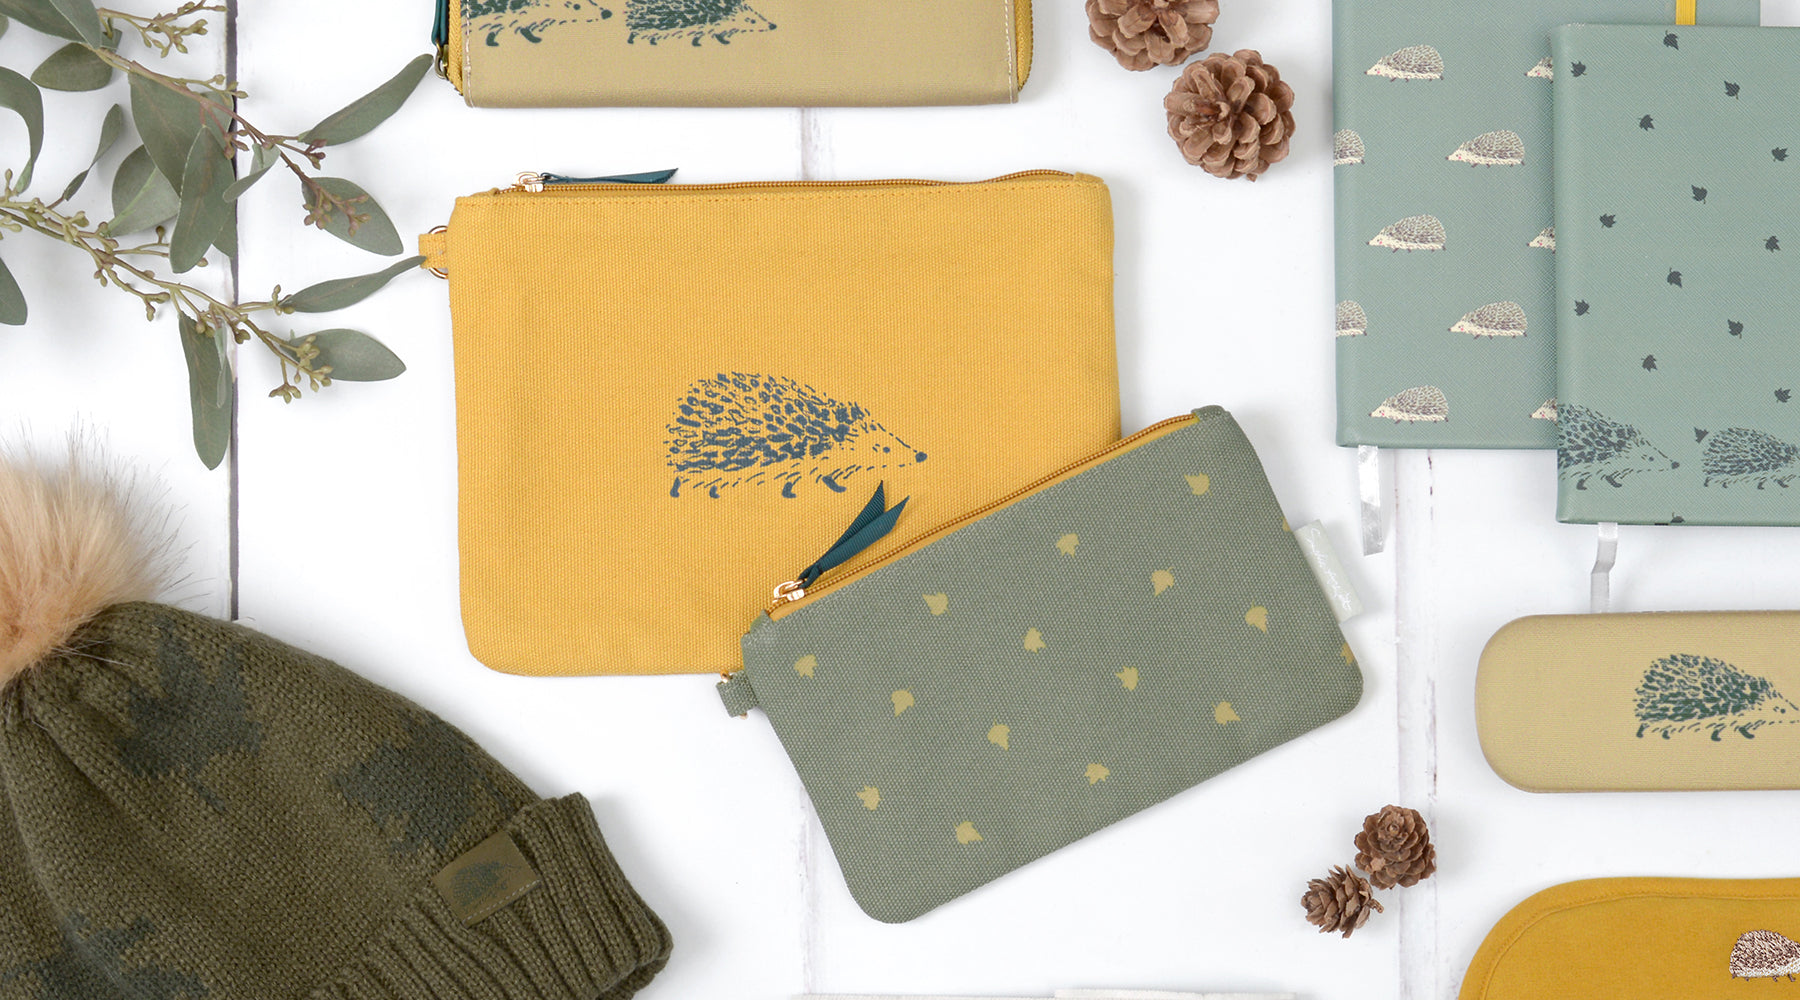 Women's clutch bags and evening bags by Sophie Allport